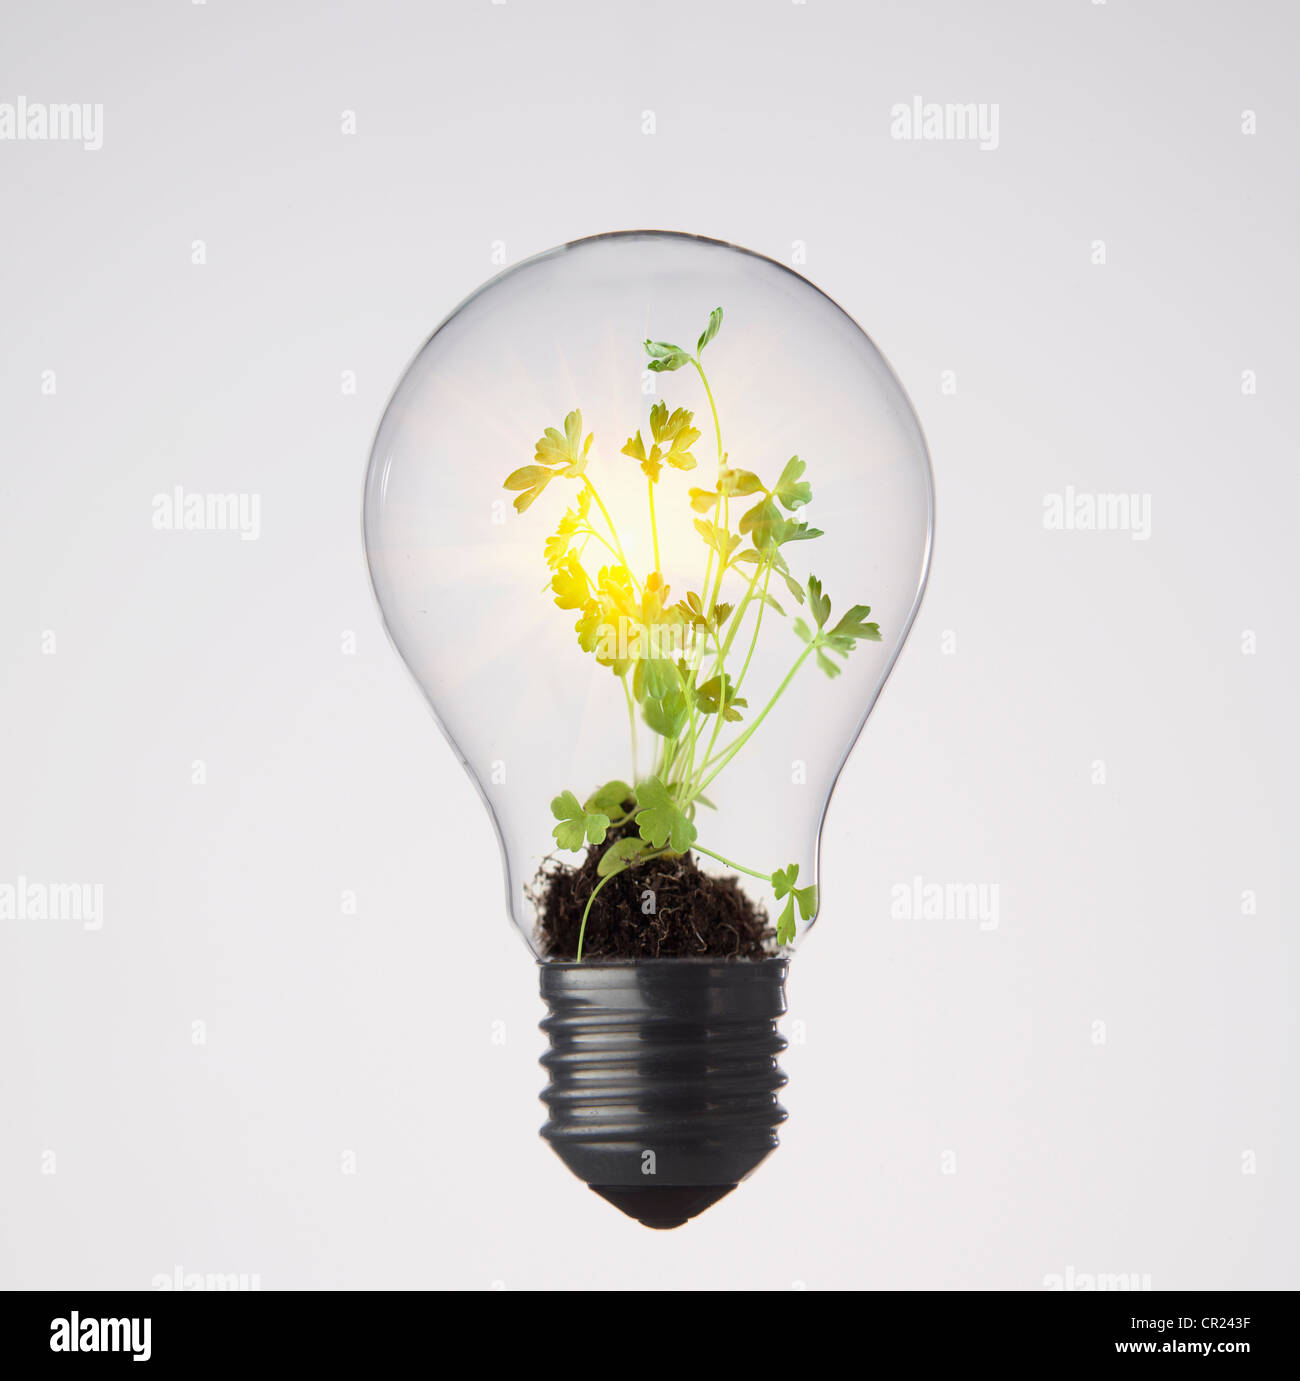 Plants growing in light bulb - Stock Image